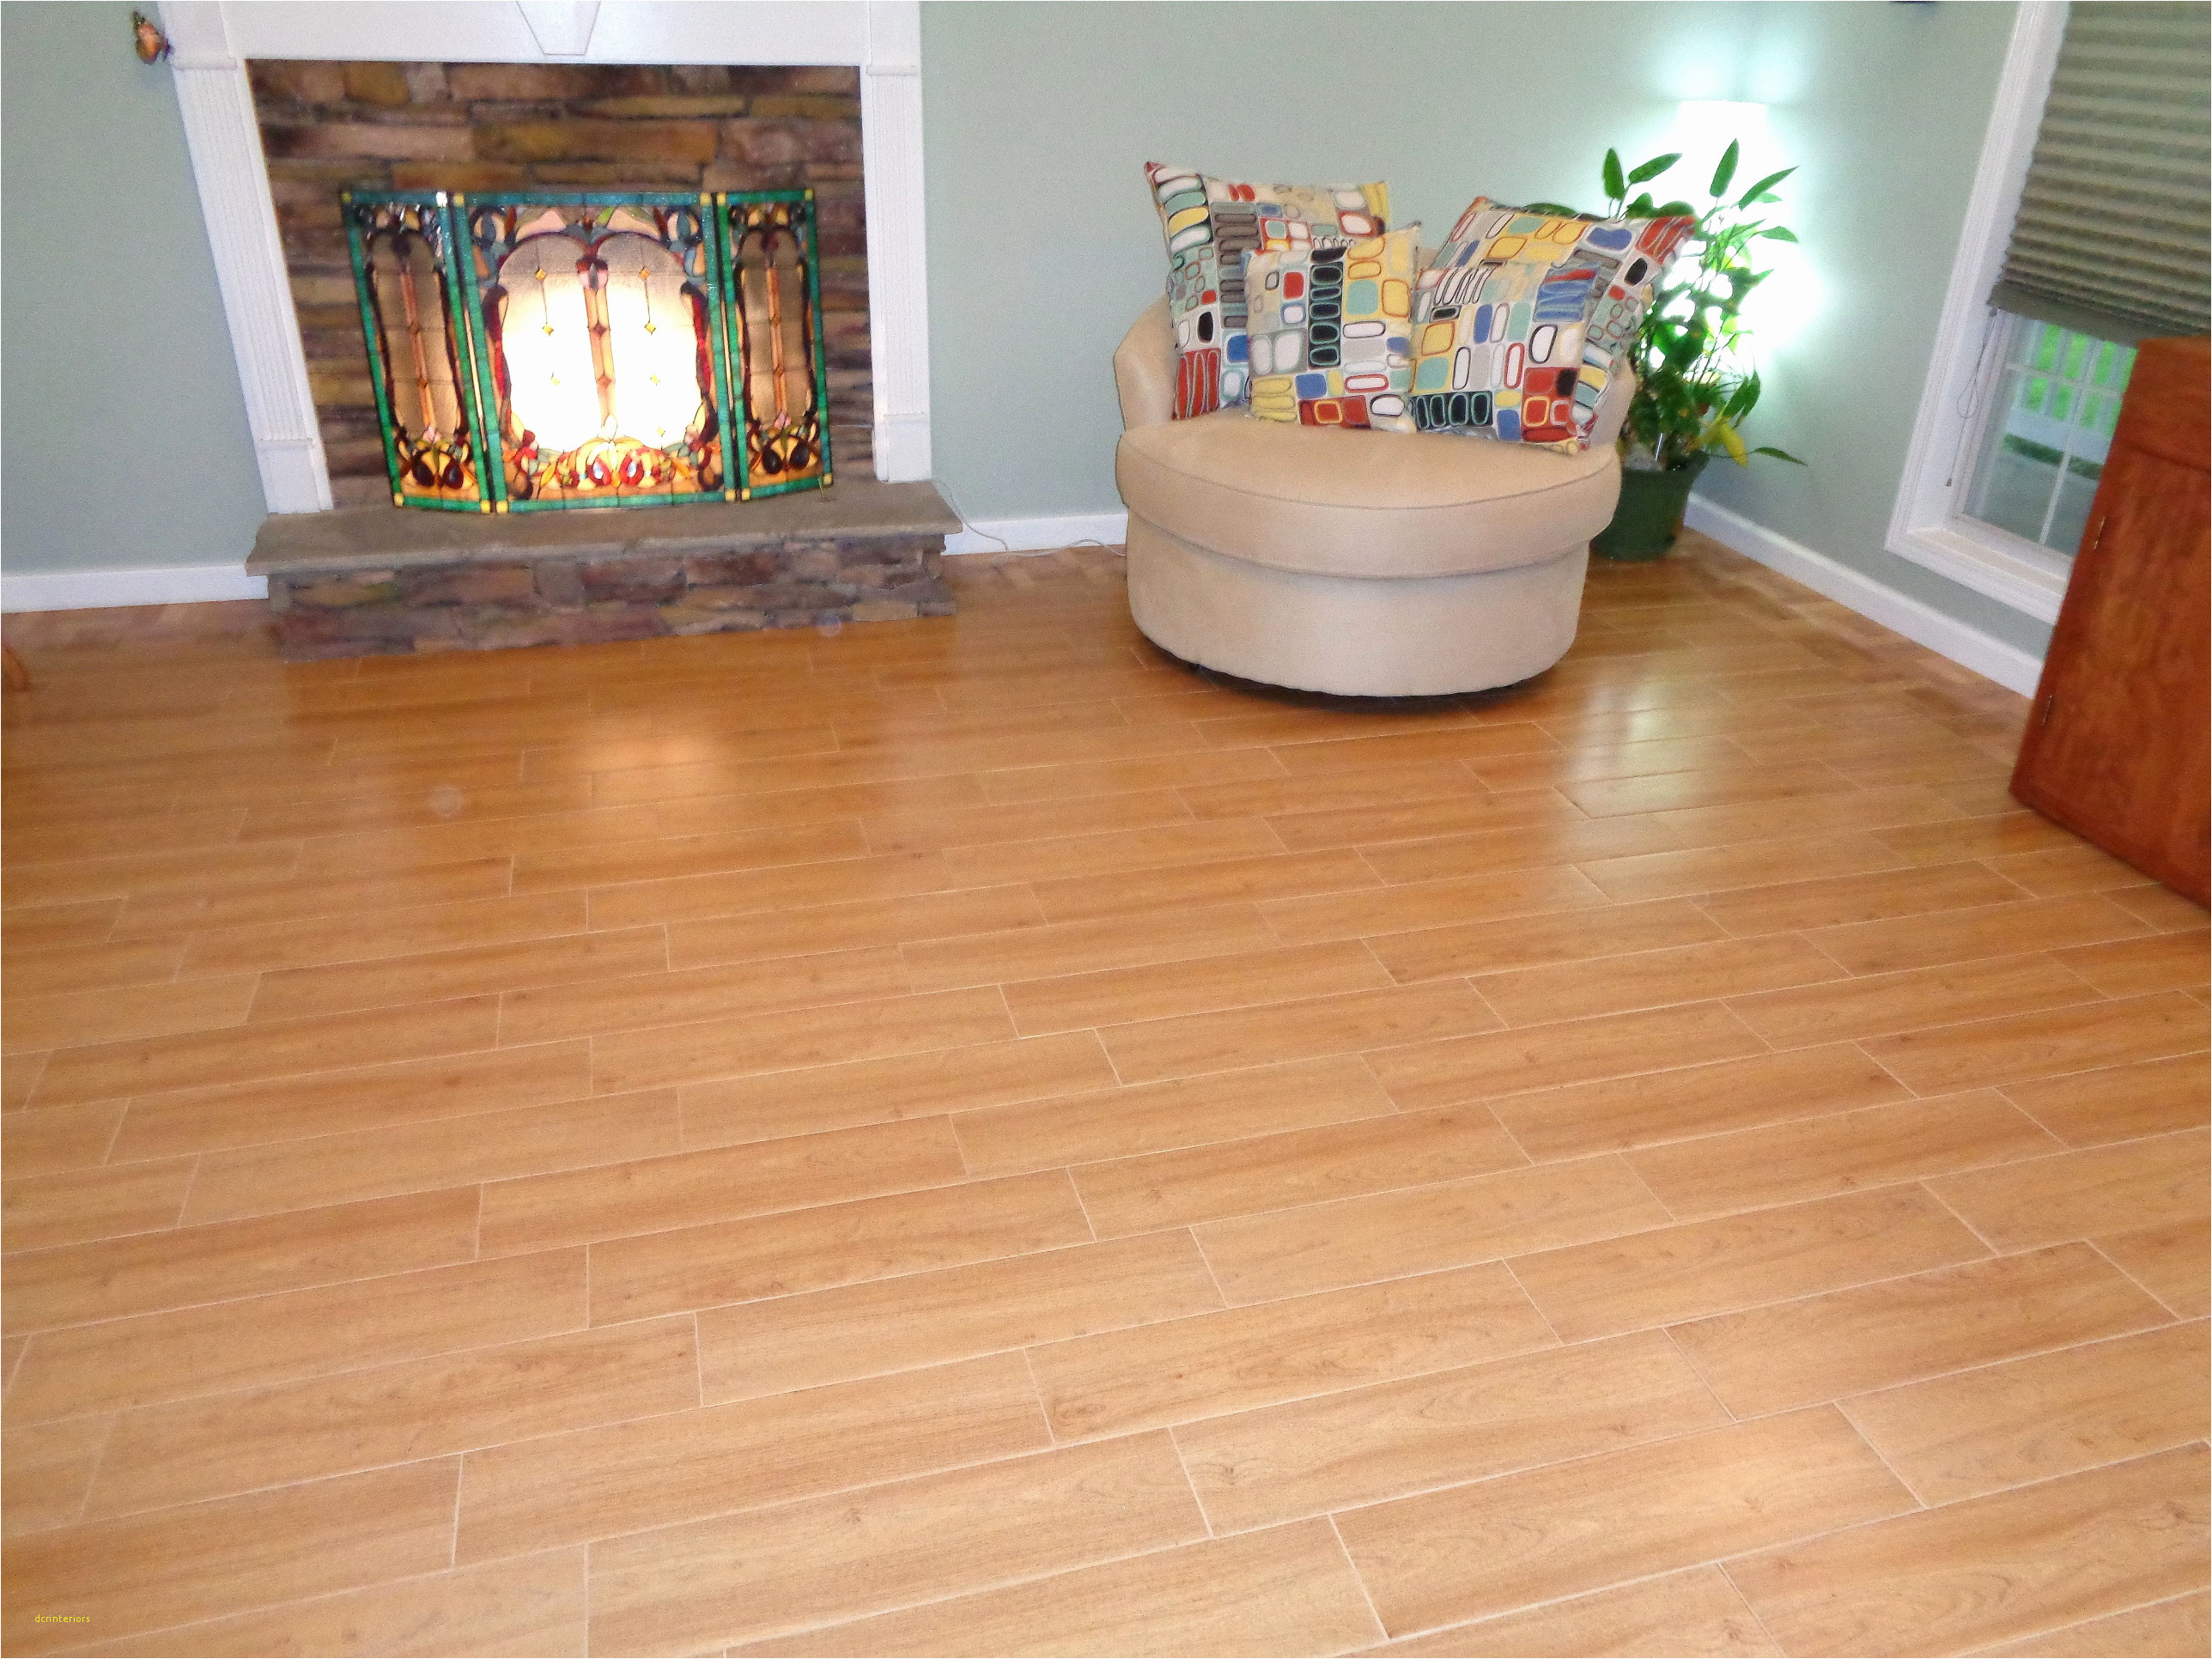 Quality Hardwood Flooring Of Lovely Bamboo Hardwood Flooring Home Design Inside 29 Amazing Laminate Flooring Ideas